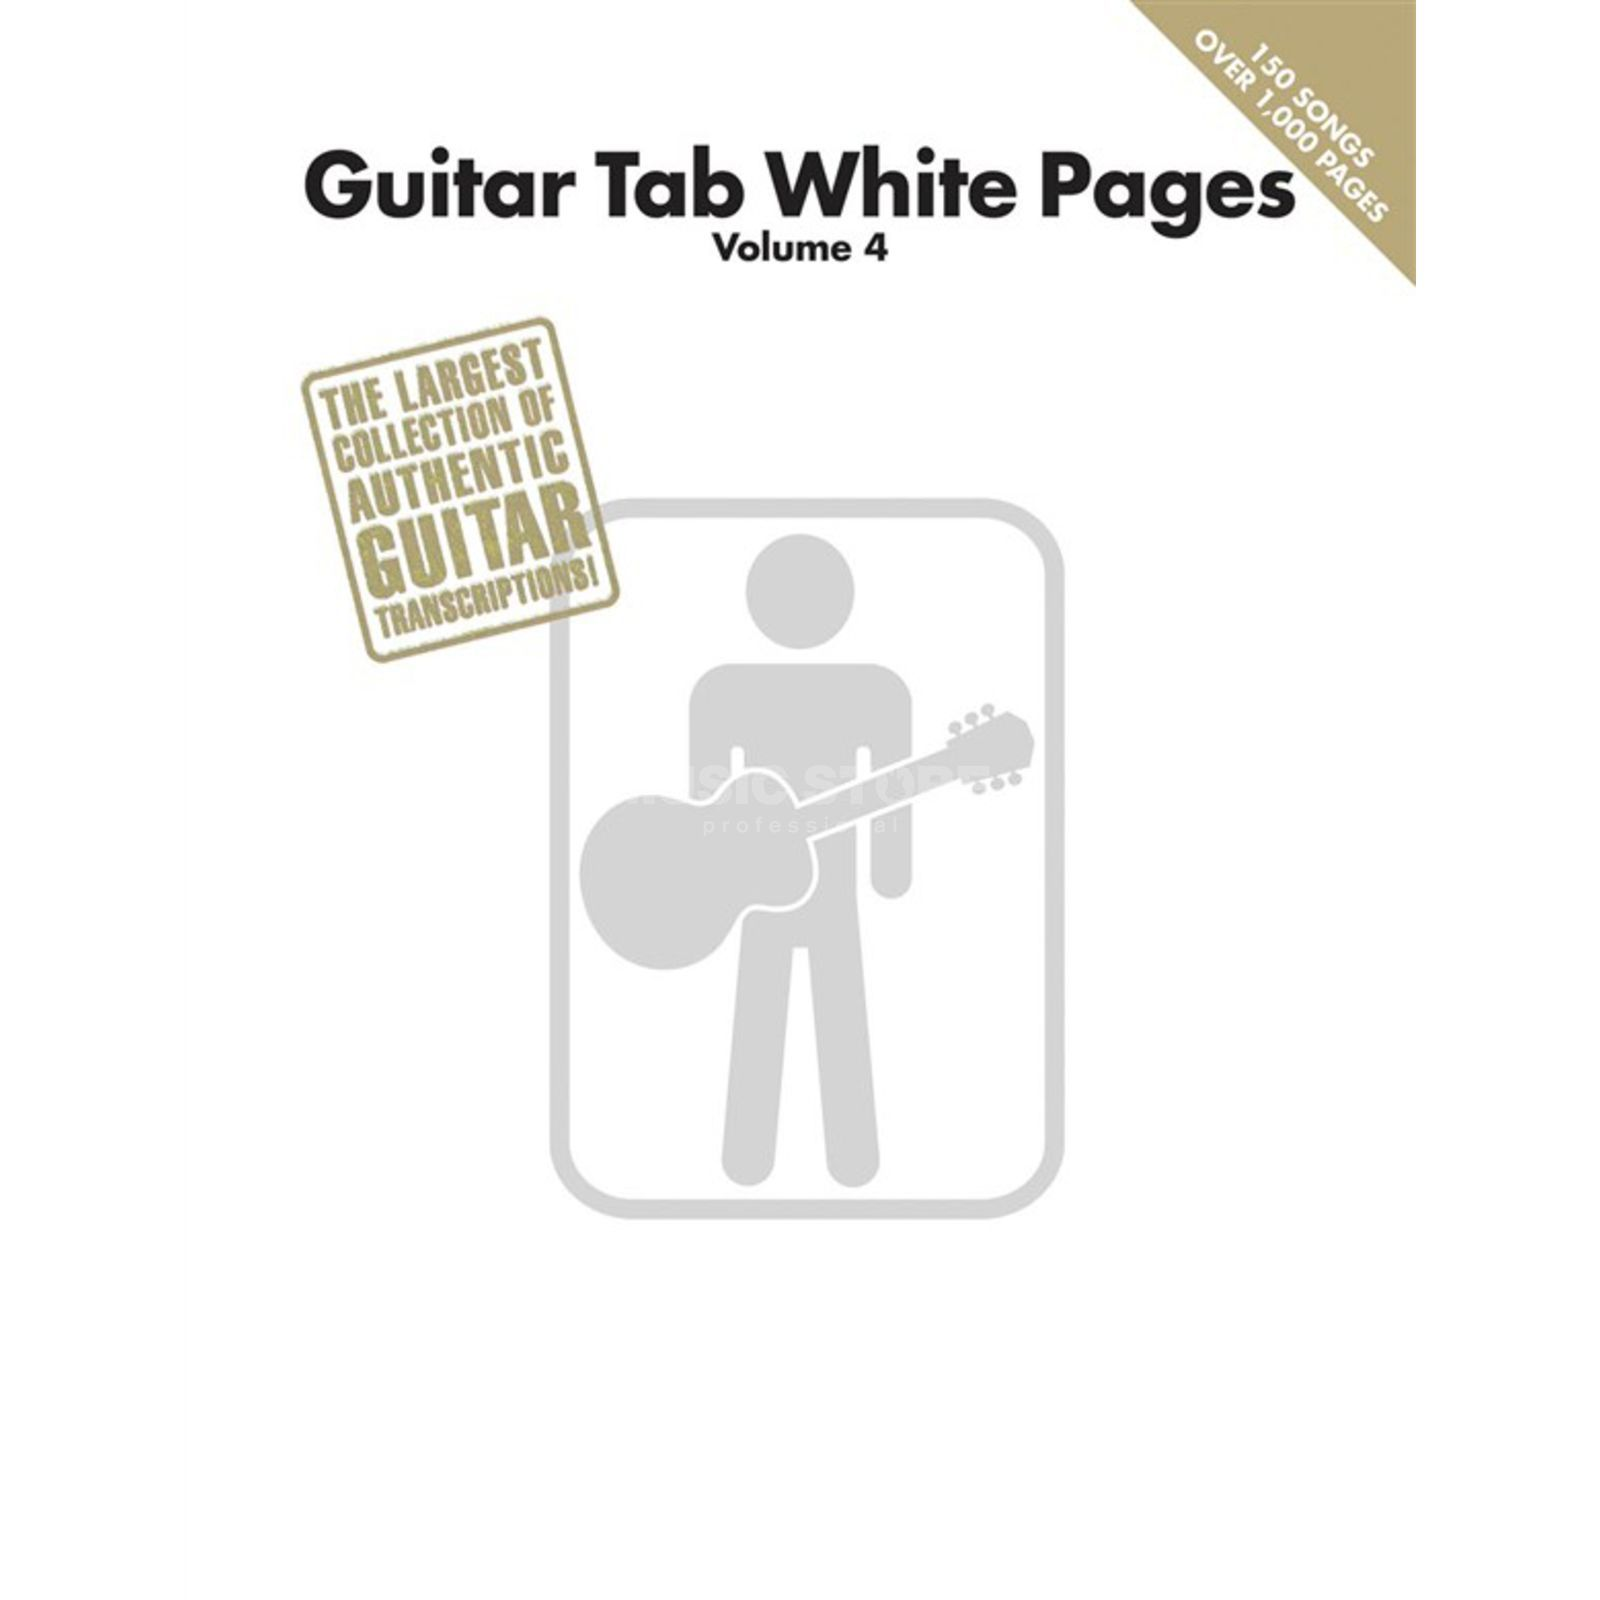 Hal Leonard Guitar Tab White Pages: Volume 4 Produktbild